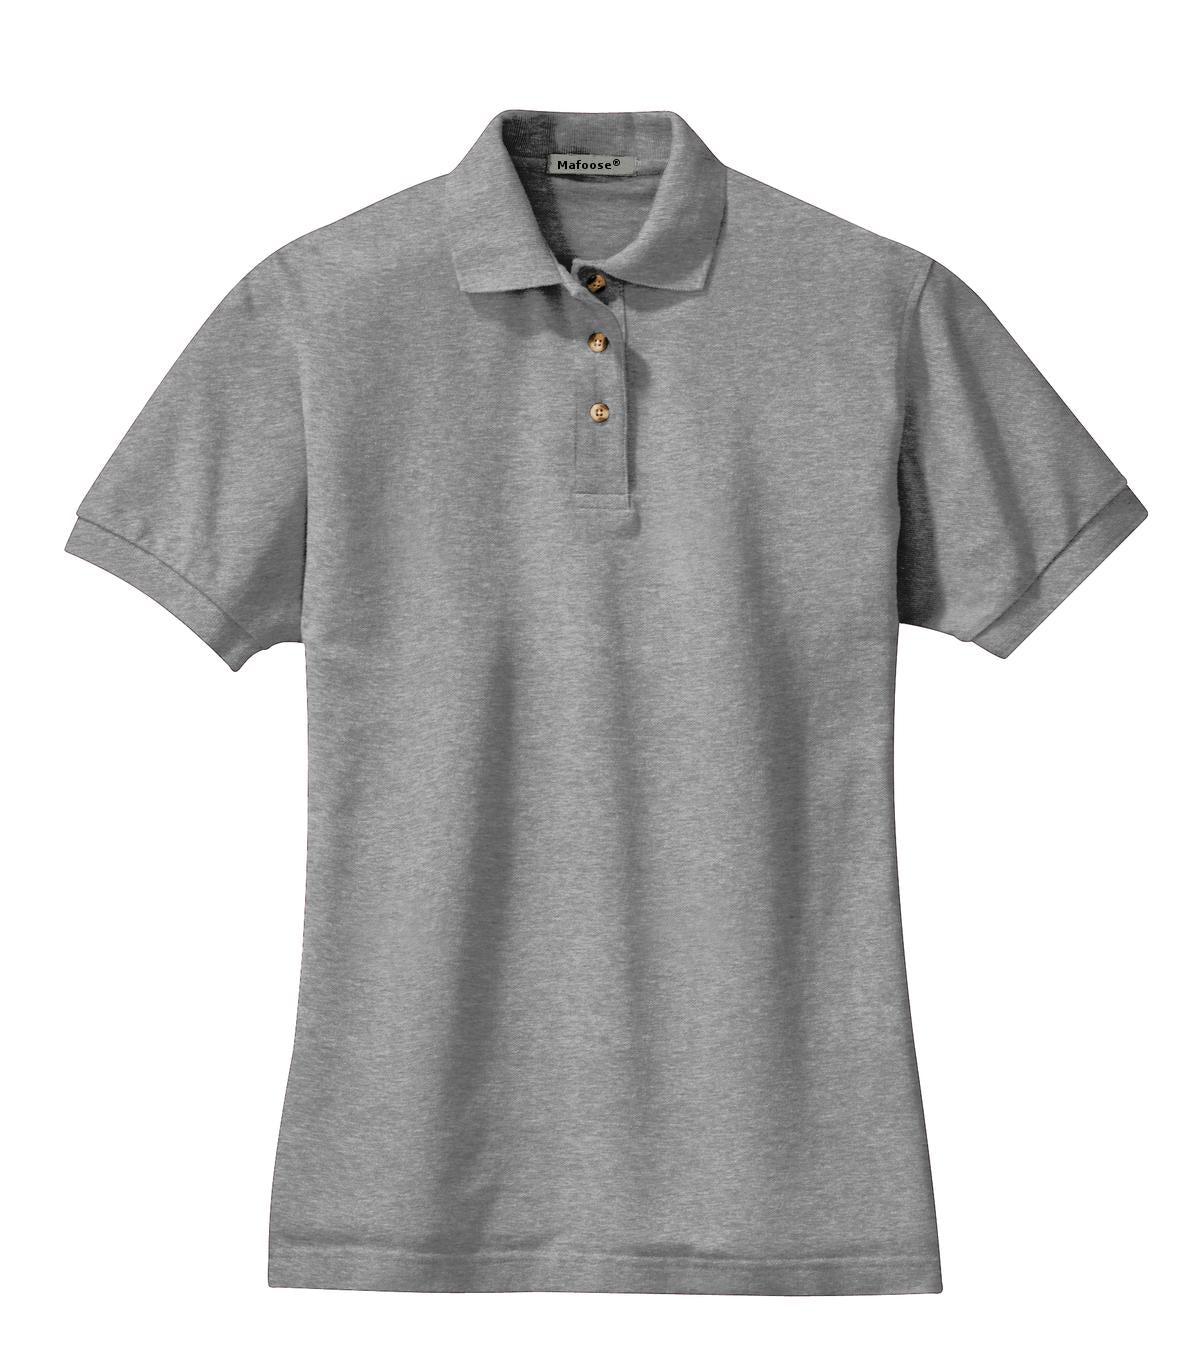 Mafoose Women's Heavyweight Cotton Pique Polo Shirt Oxford-Front